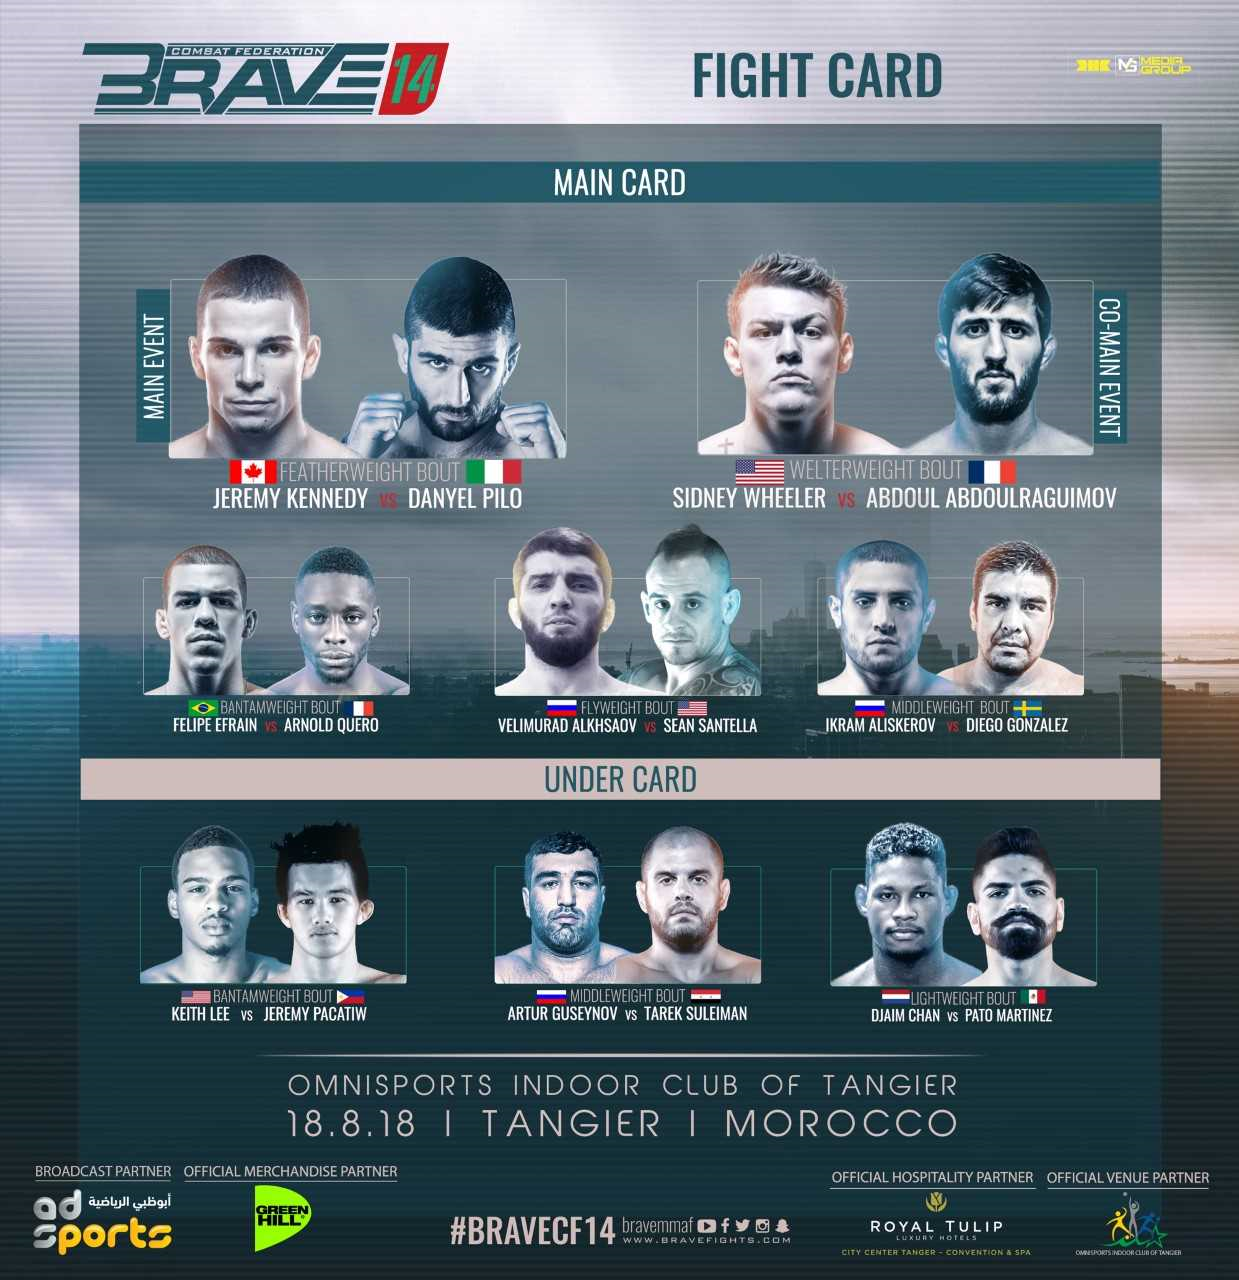 Brave 14 fight card